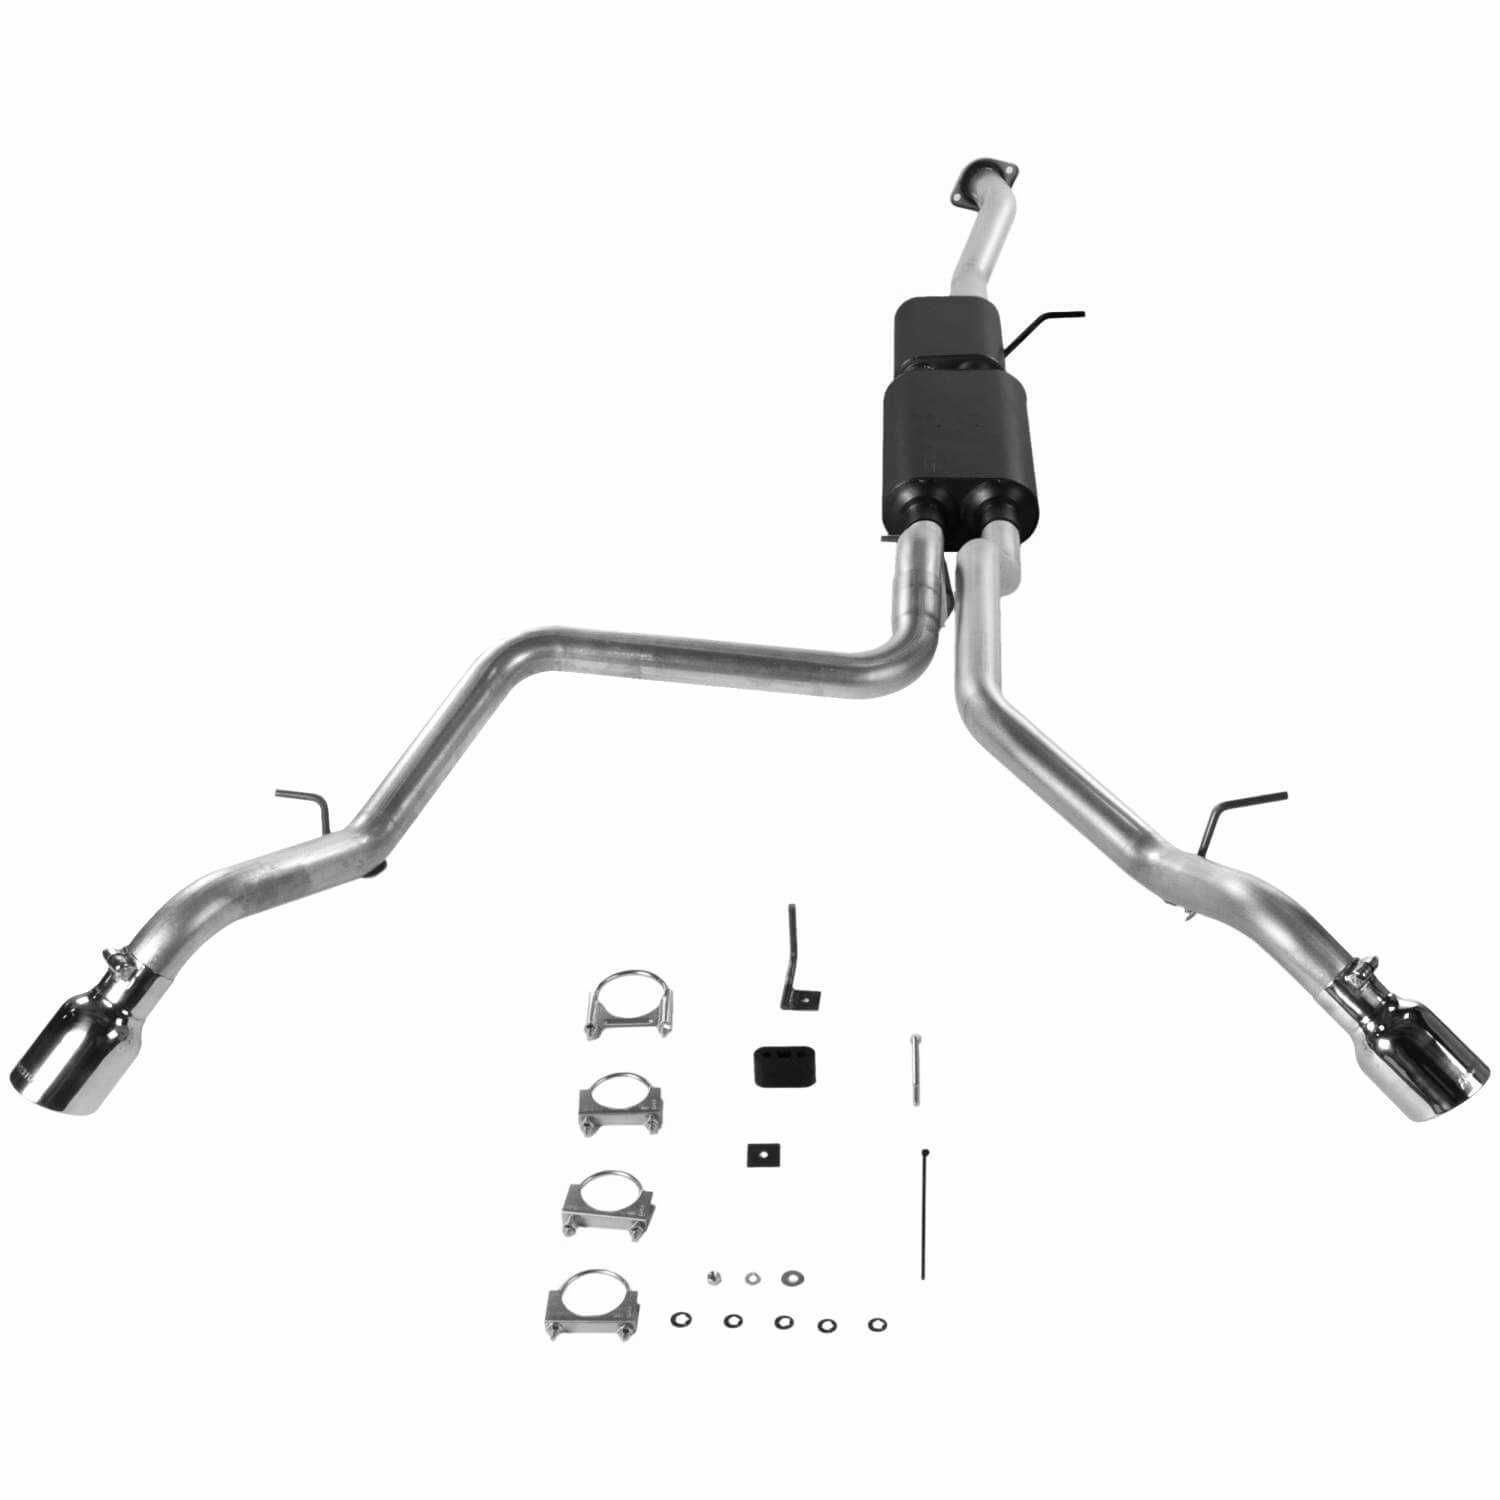 Flowmaster American Thunder Cat Back Exhaust System 17342